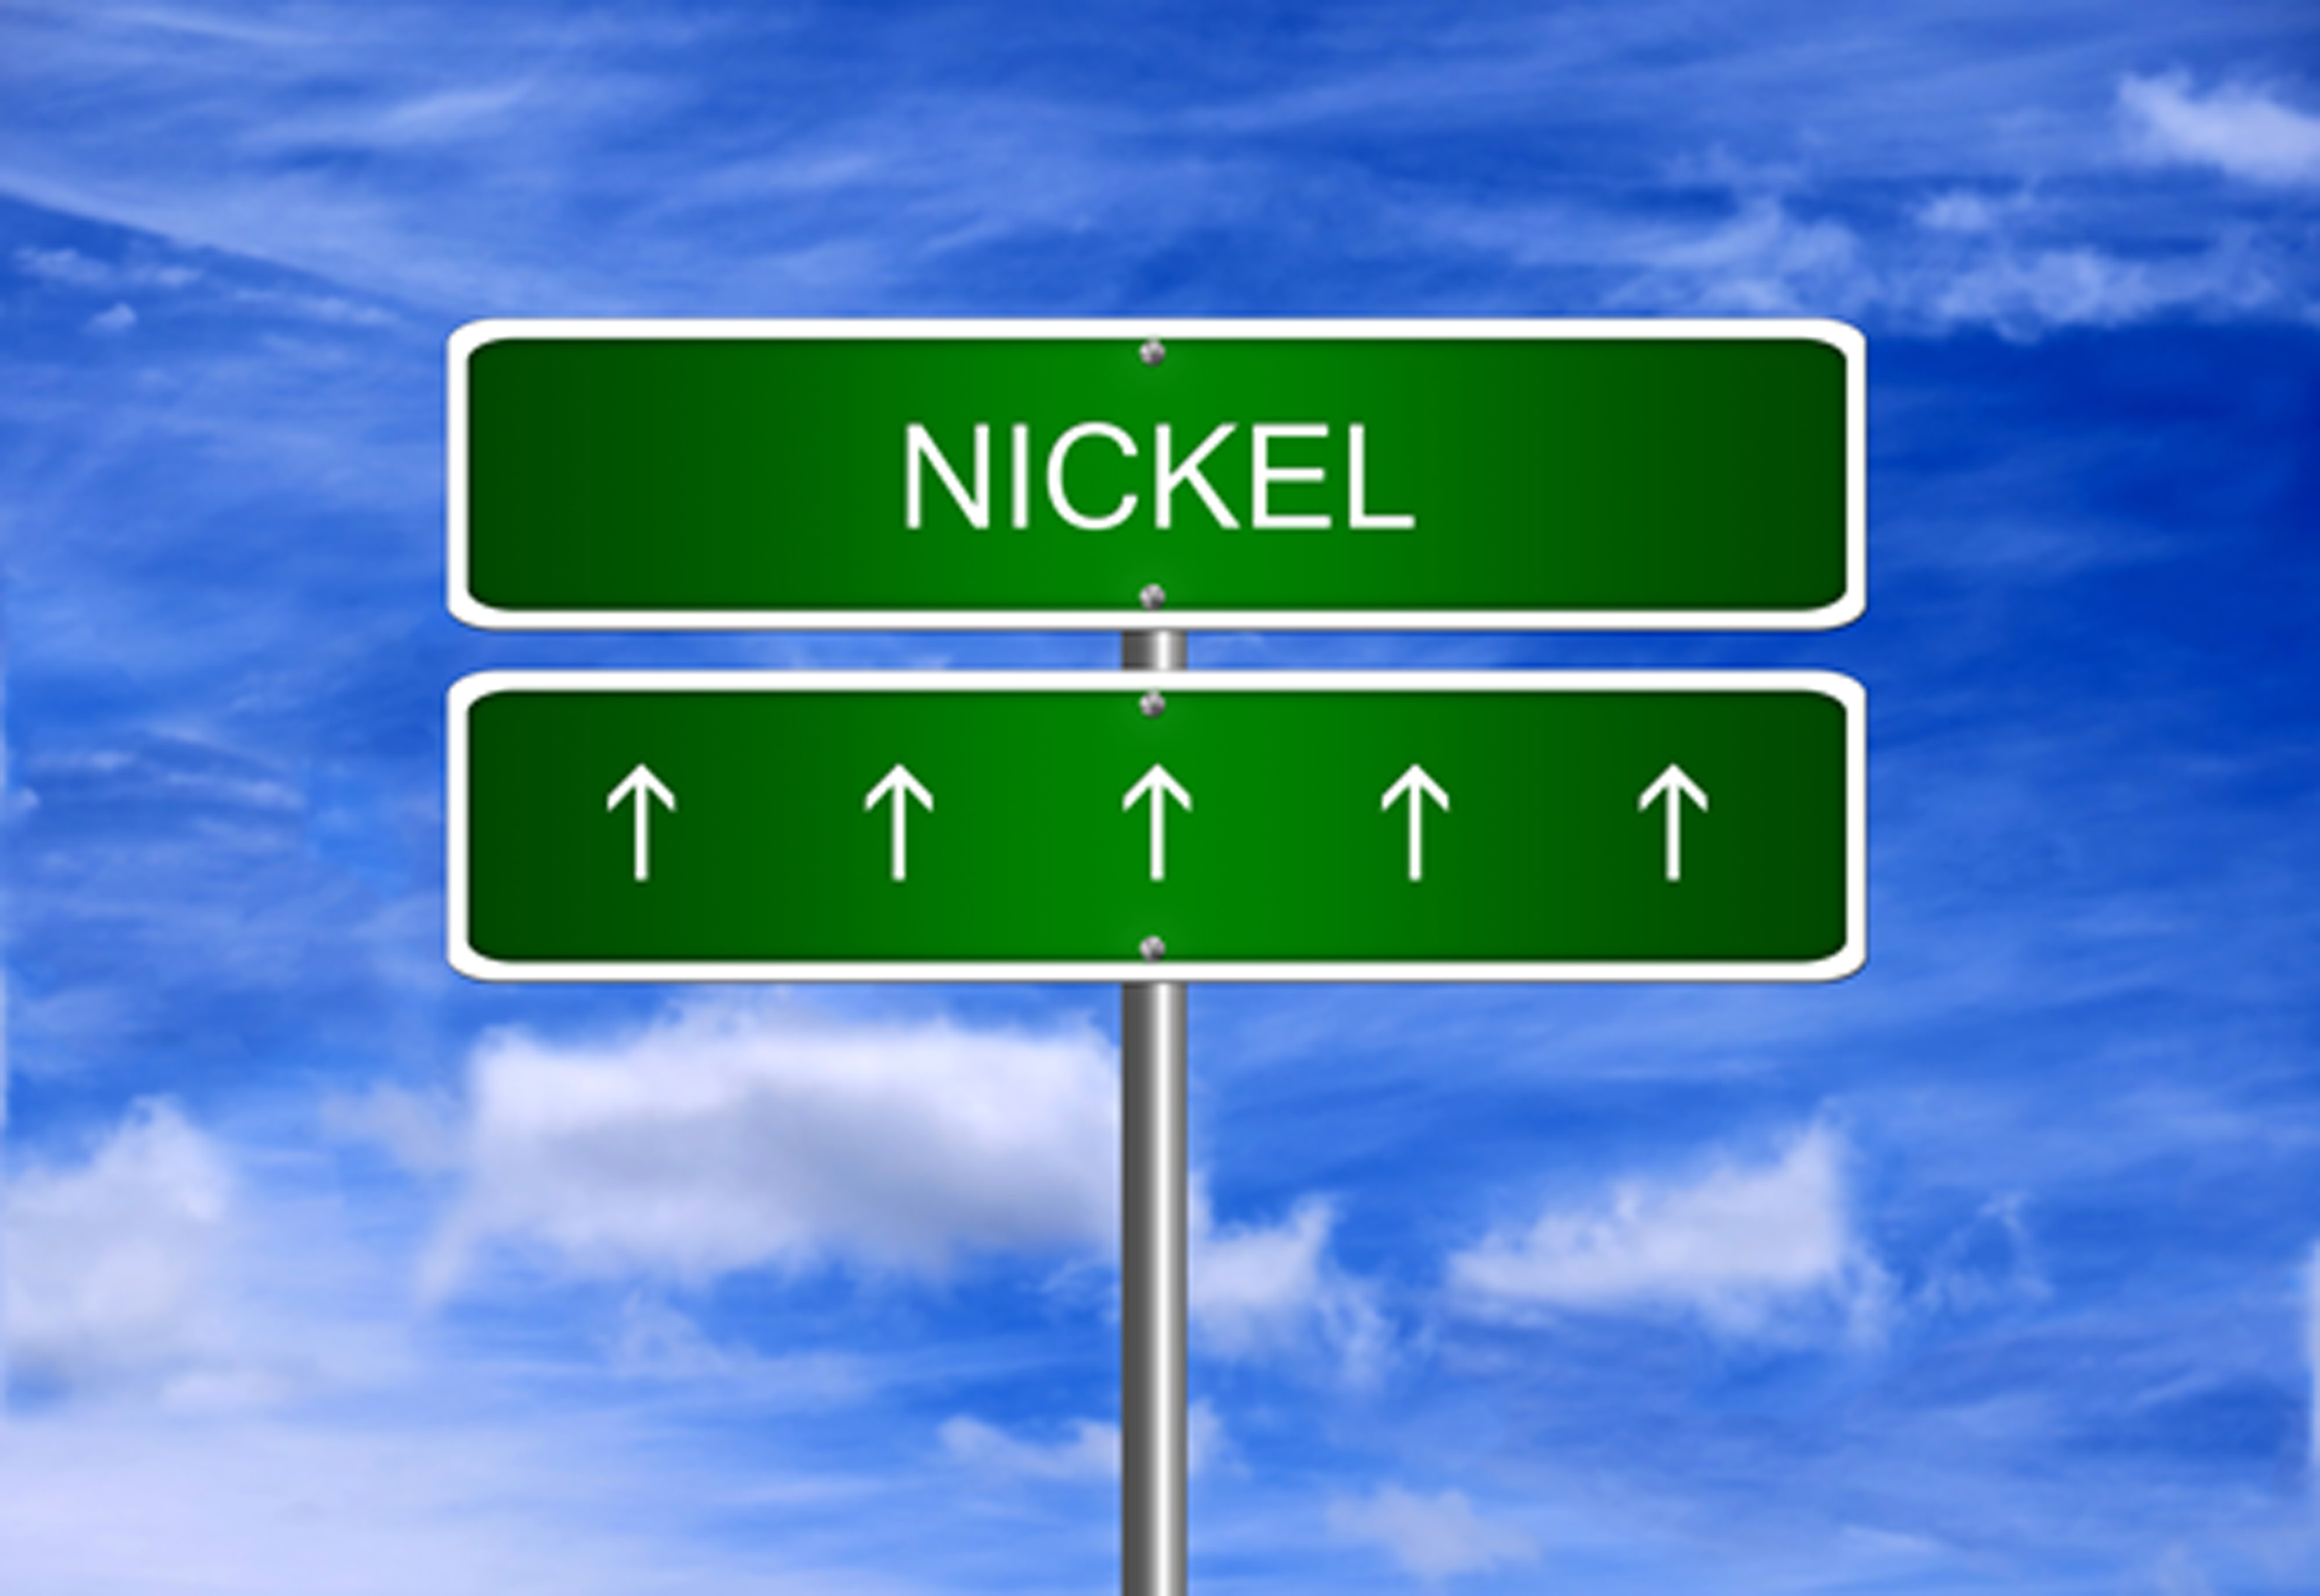 LME Nickel Prices Hit 13200 Per Ton Last Wednesday The Highest Level Since June 2015 Before Investors Took Profits And Price Fell Back A Touch To